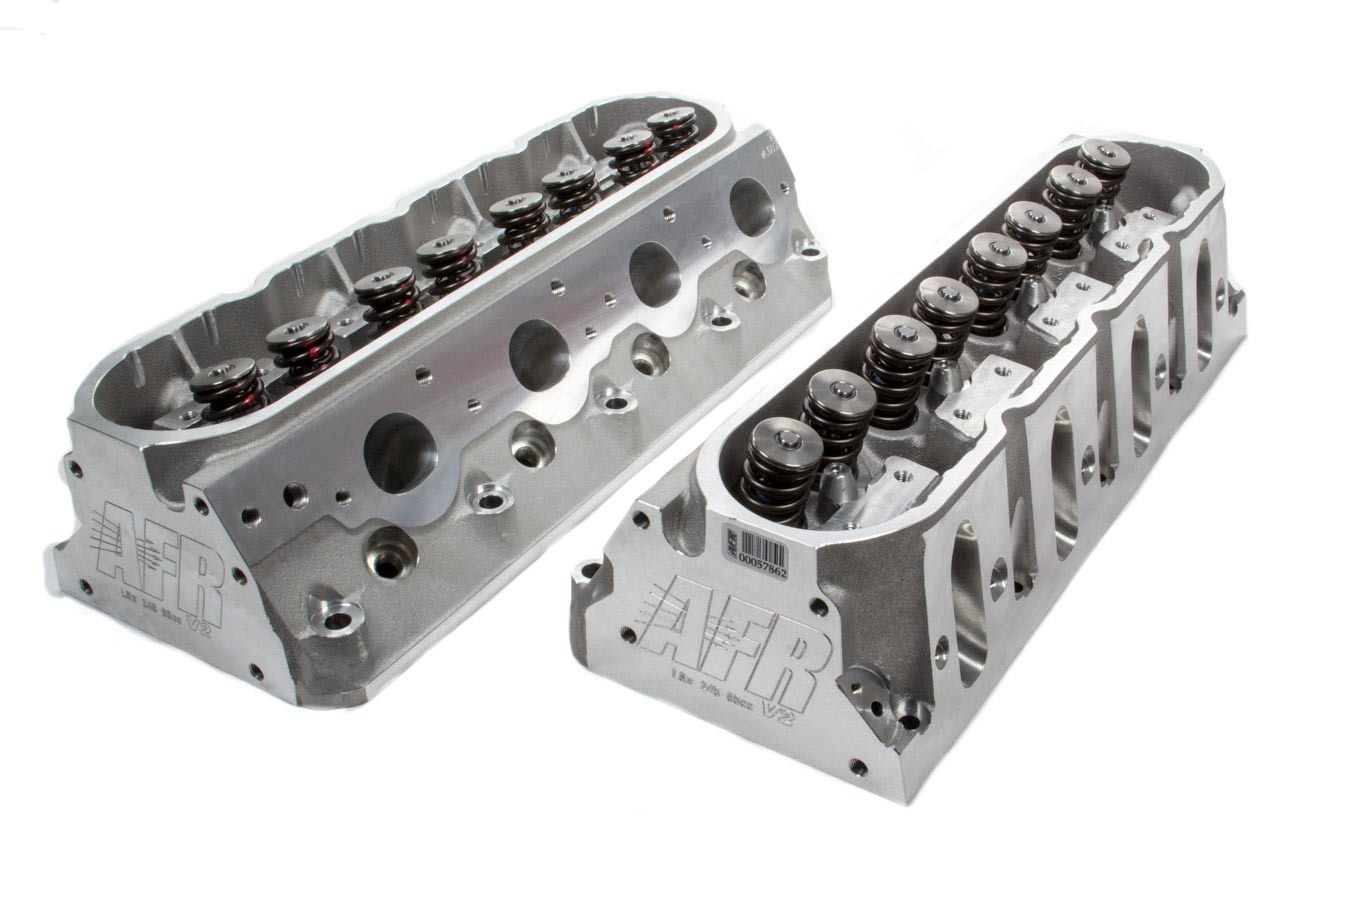 1680 AFR 245cc LS1 15 degree Cylinder Head